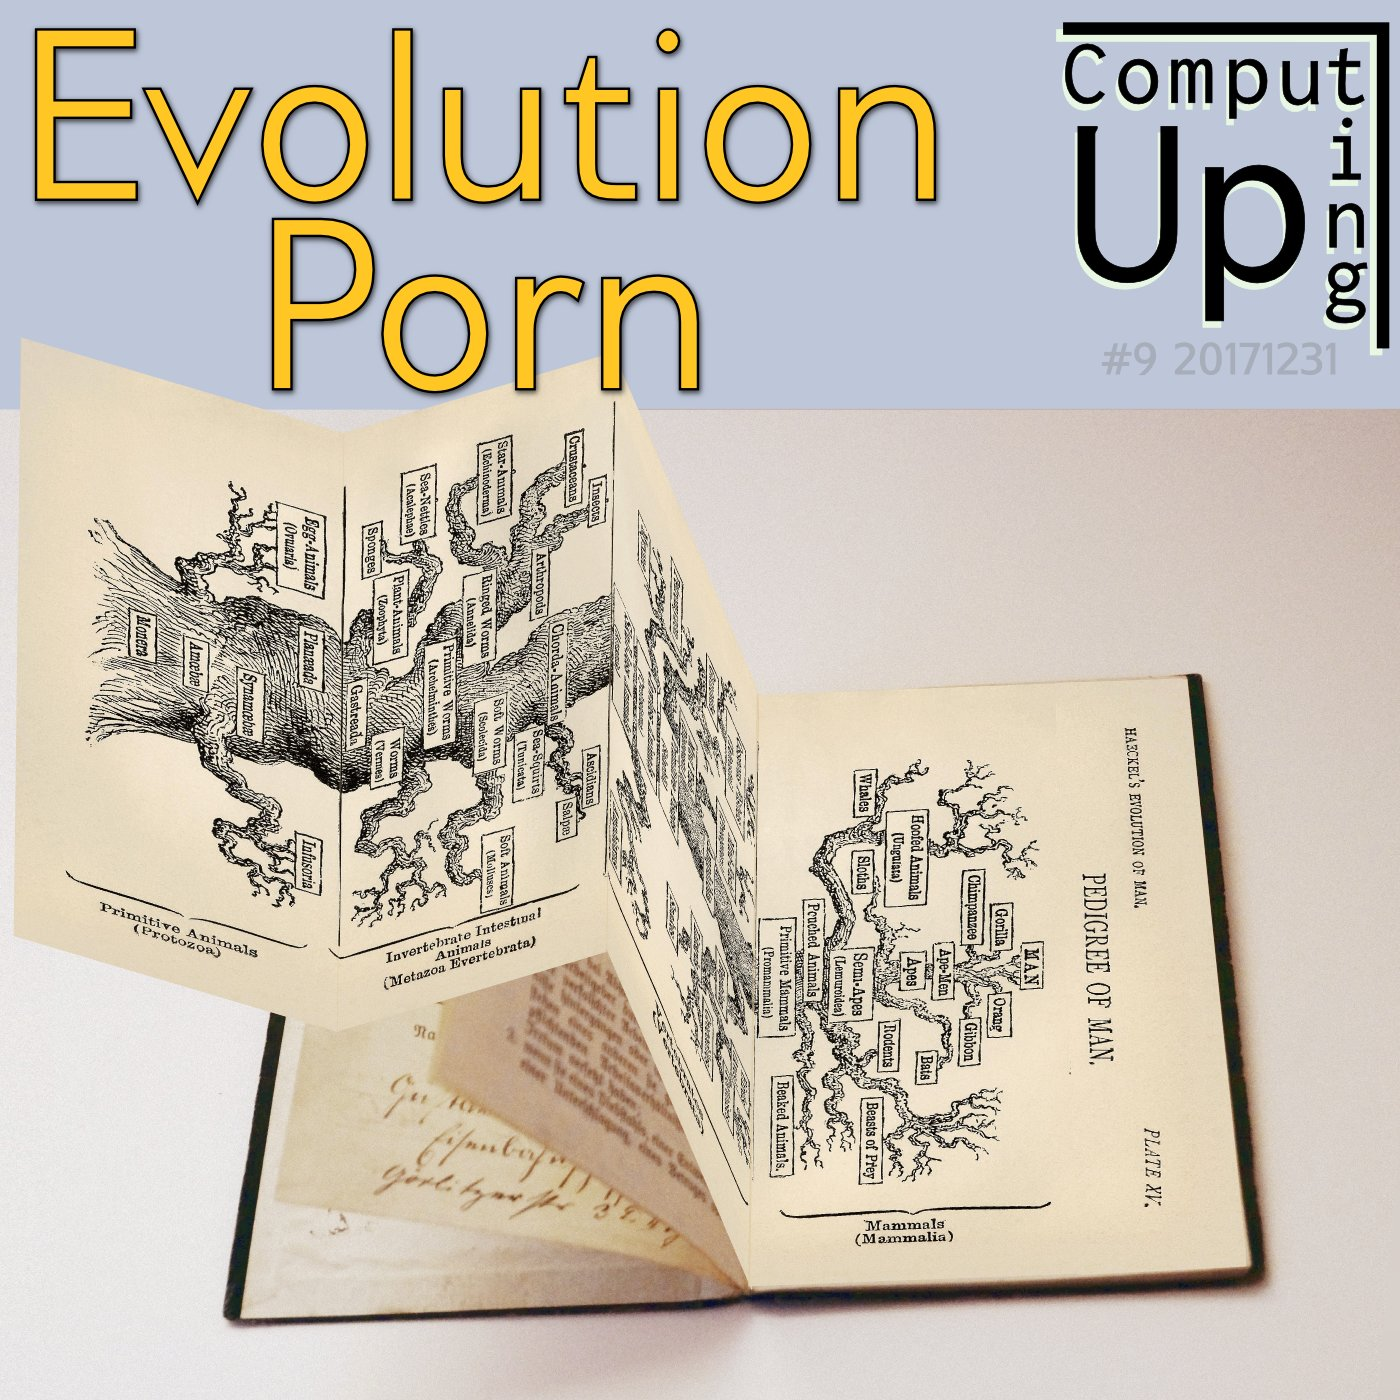 Artwork for Evolution Porn - Computing Up Ninth Conversation